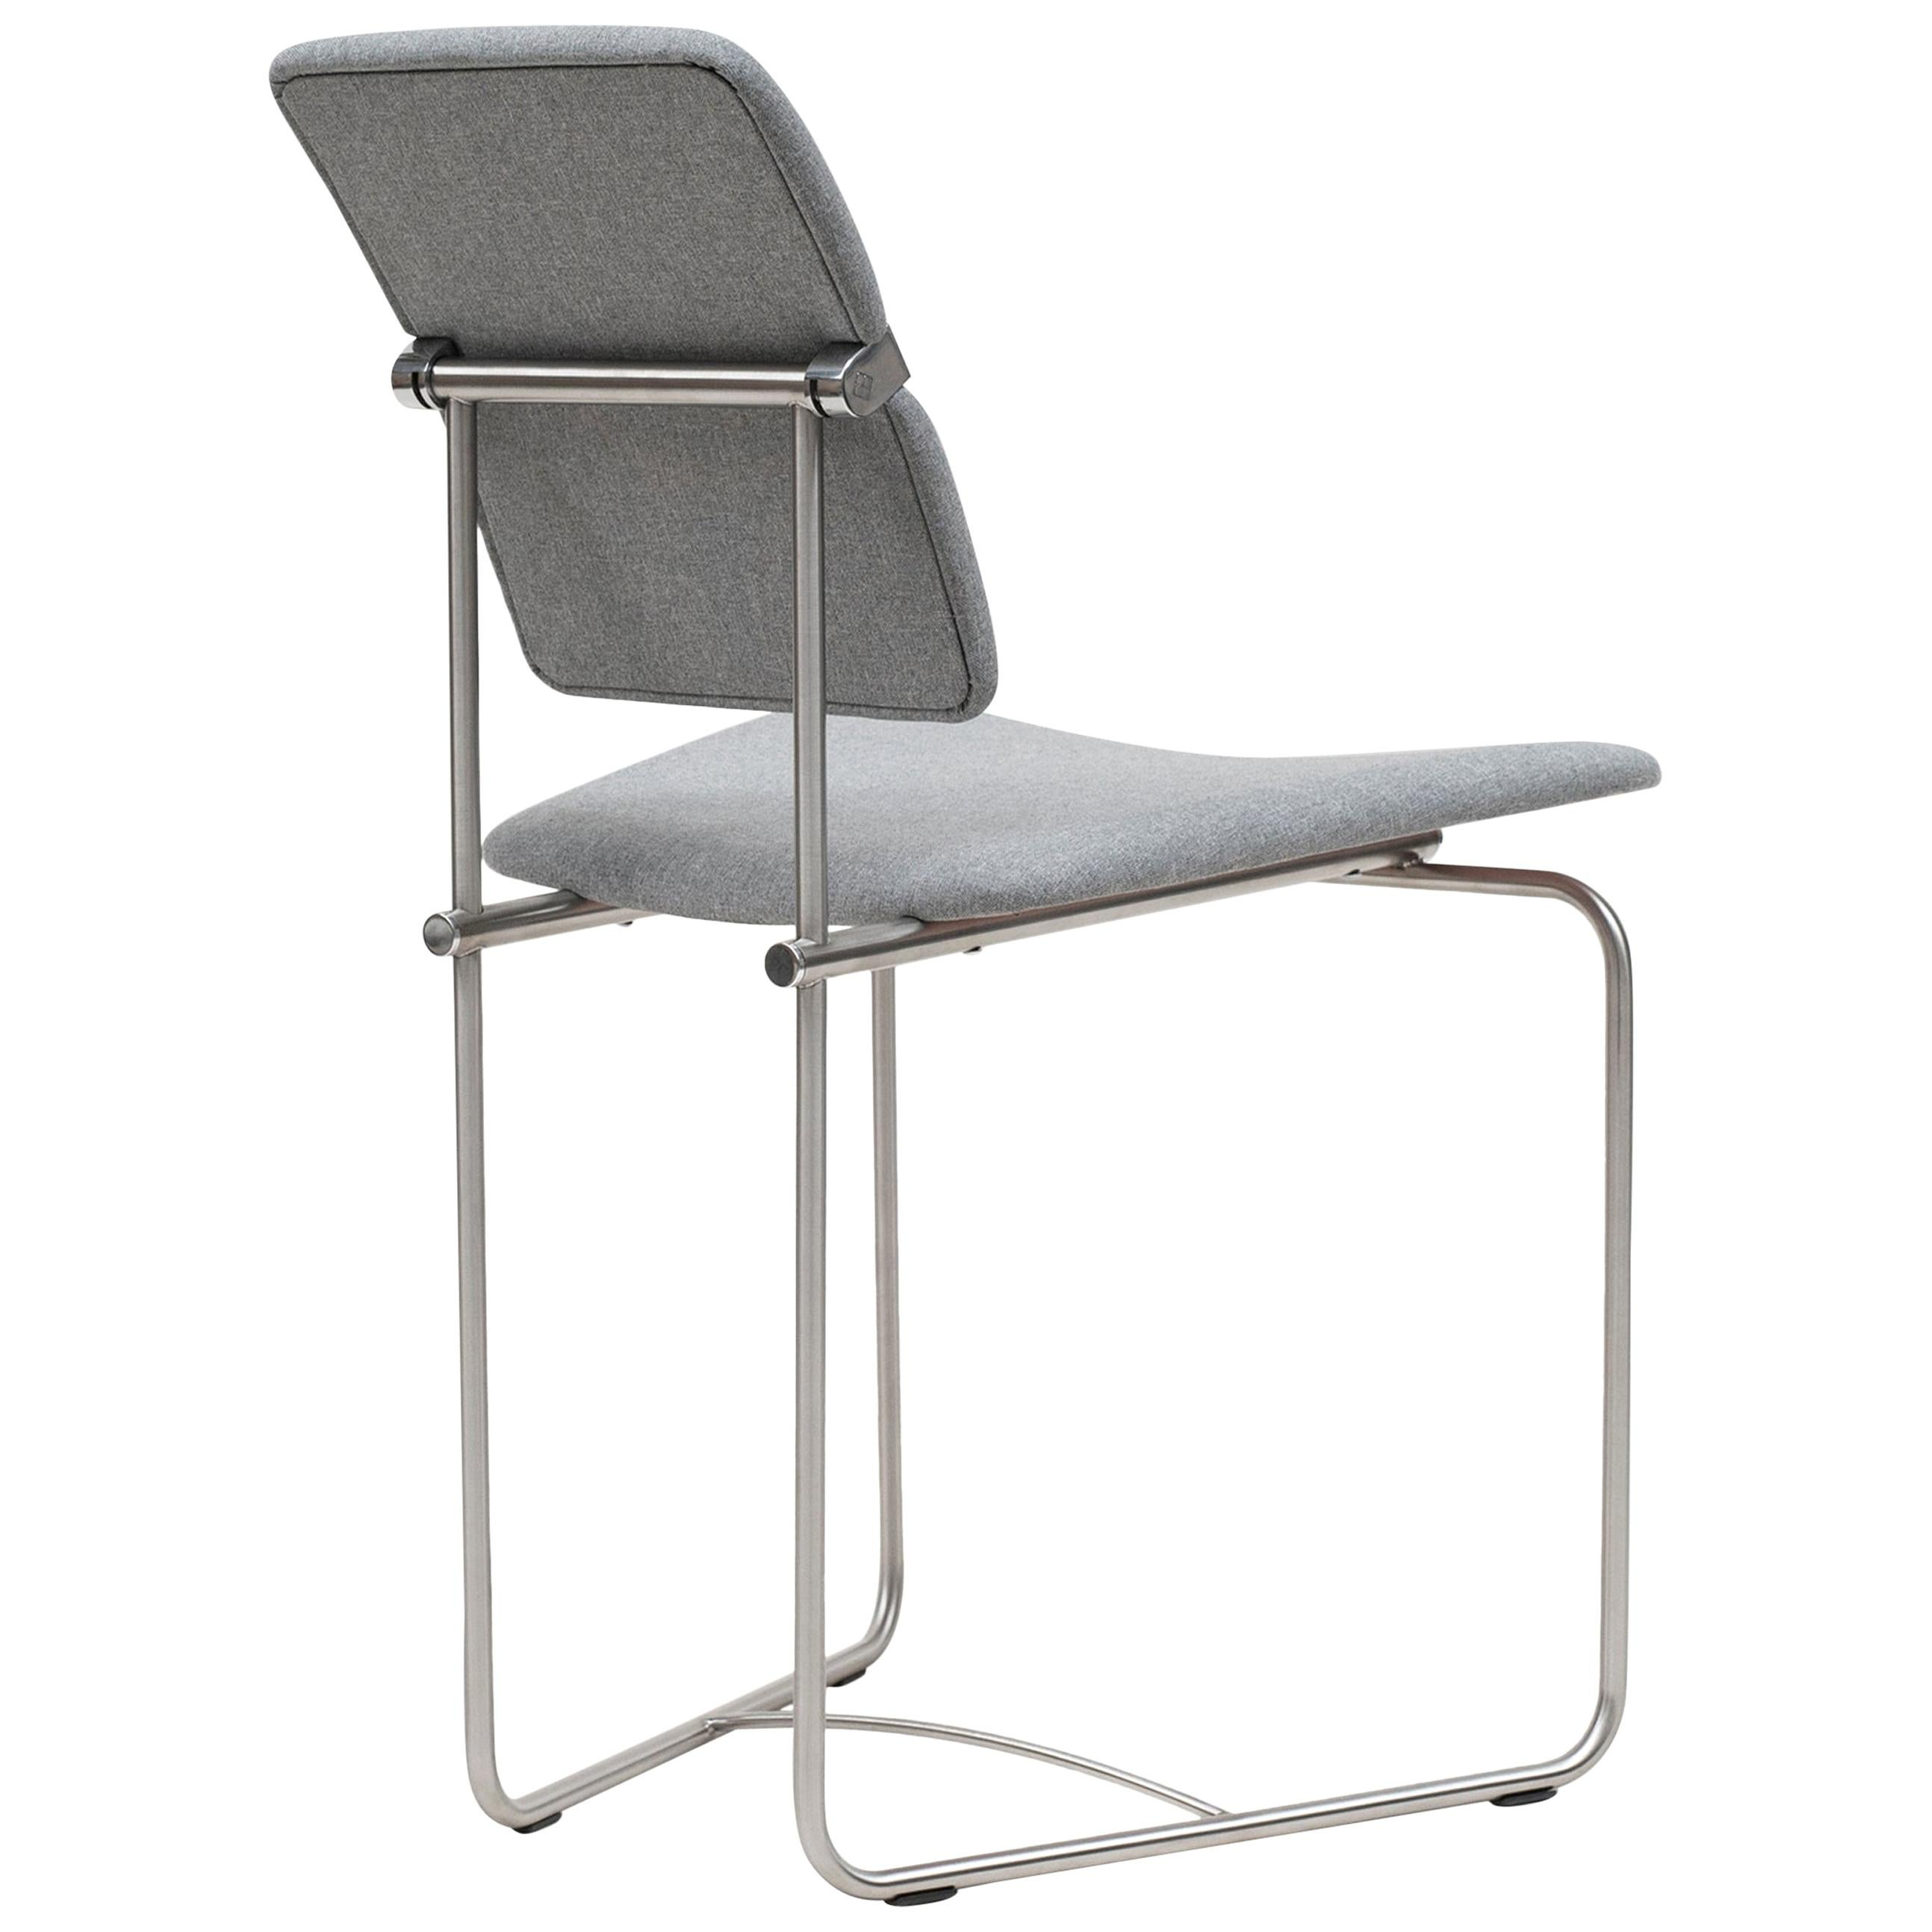 Peter Ghyczy Chair Urban Jodie 'S02' Stainless Steel Matt / Grey Fabric